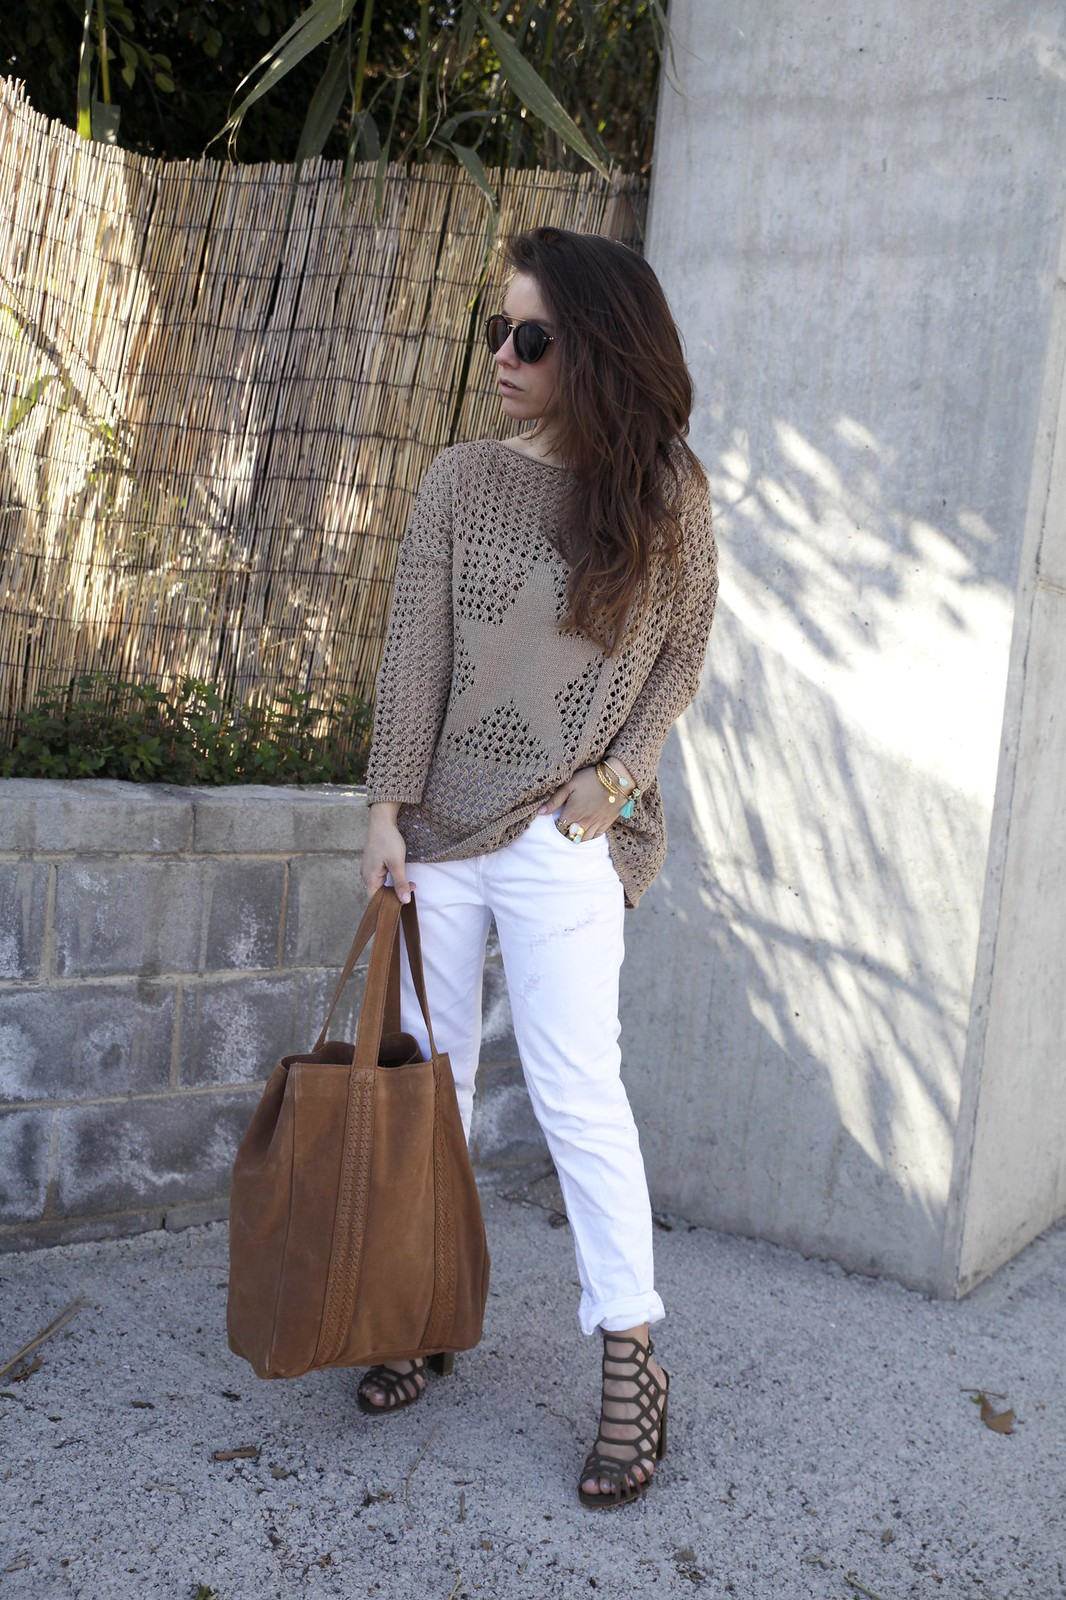 011_SPRING_NEUTRAL_OUTFIT_STREET_STYLE_FASHION_BLOGGER_INFLUENCER_BARCELONA_THEGUESTGIRL